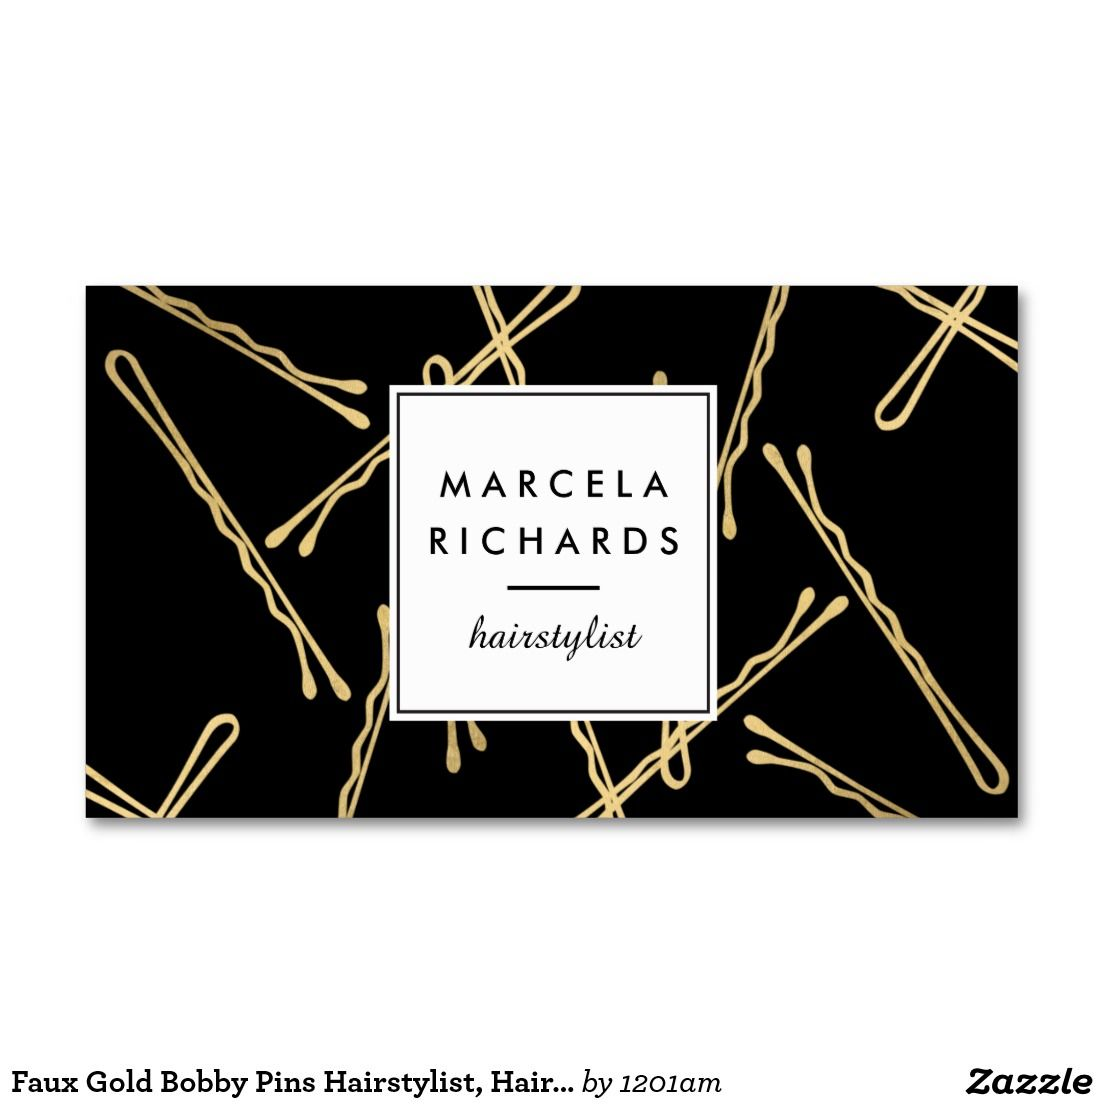 Chic Gold Bobby Pins Designer Business Cards for Hairstylists and ...